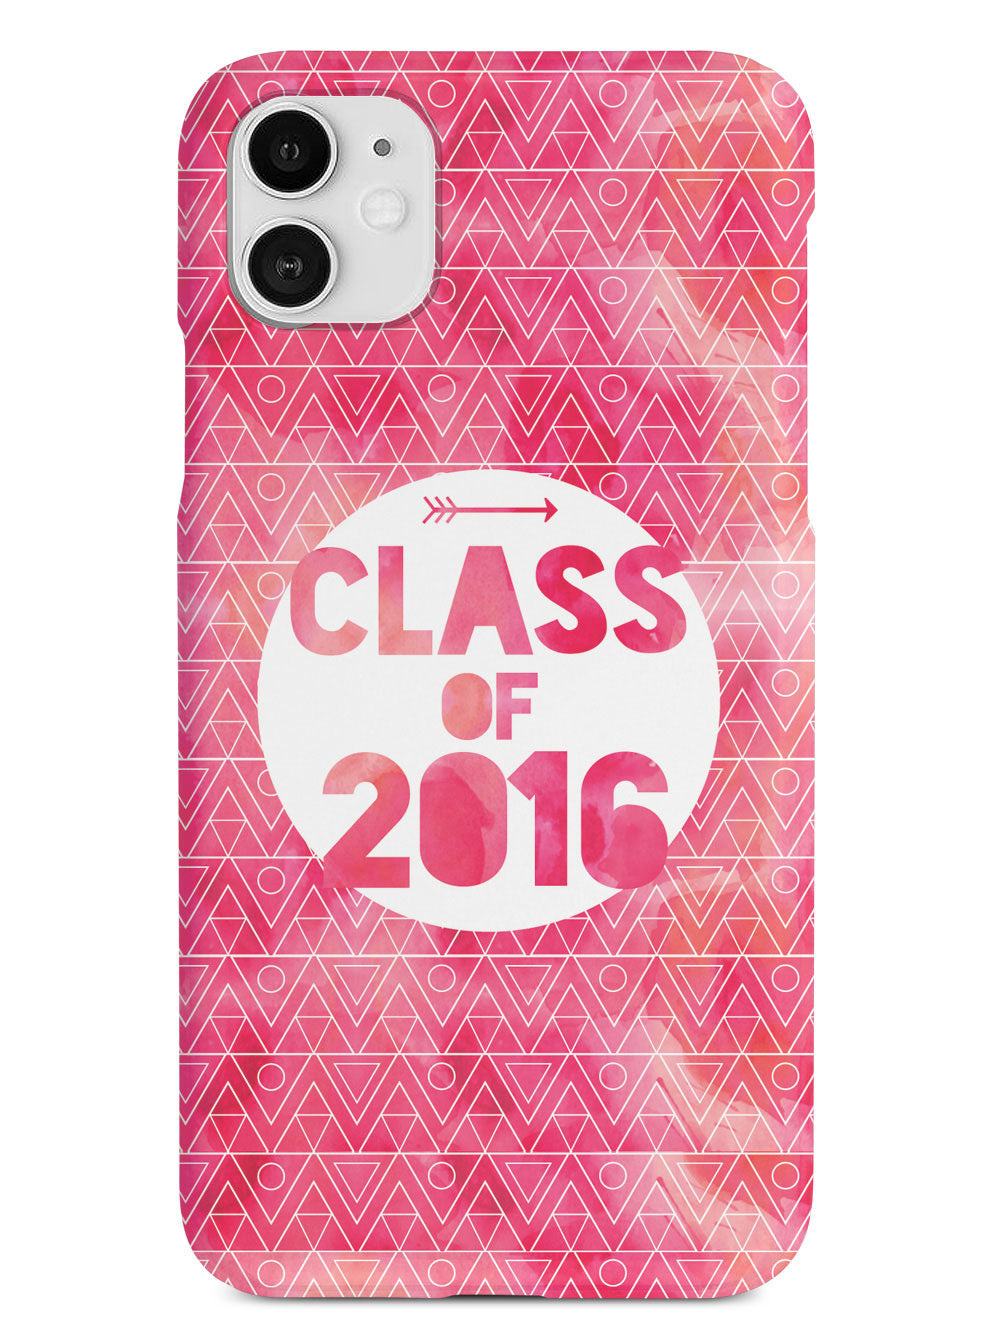 Class of 2016 - Pink Watercolor Case